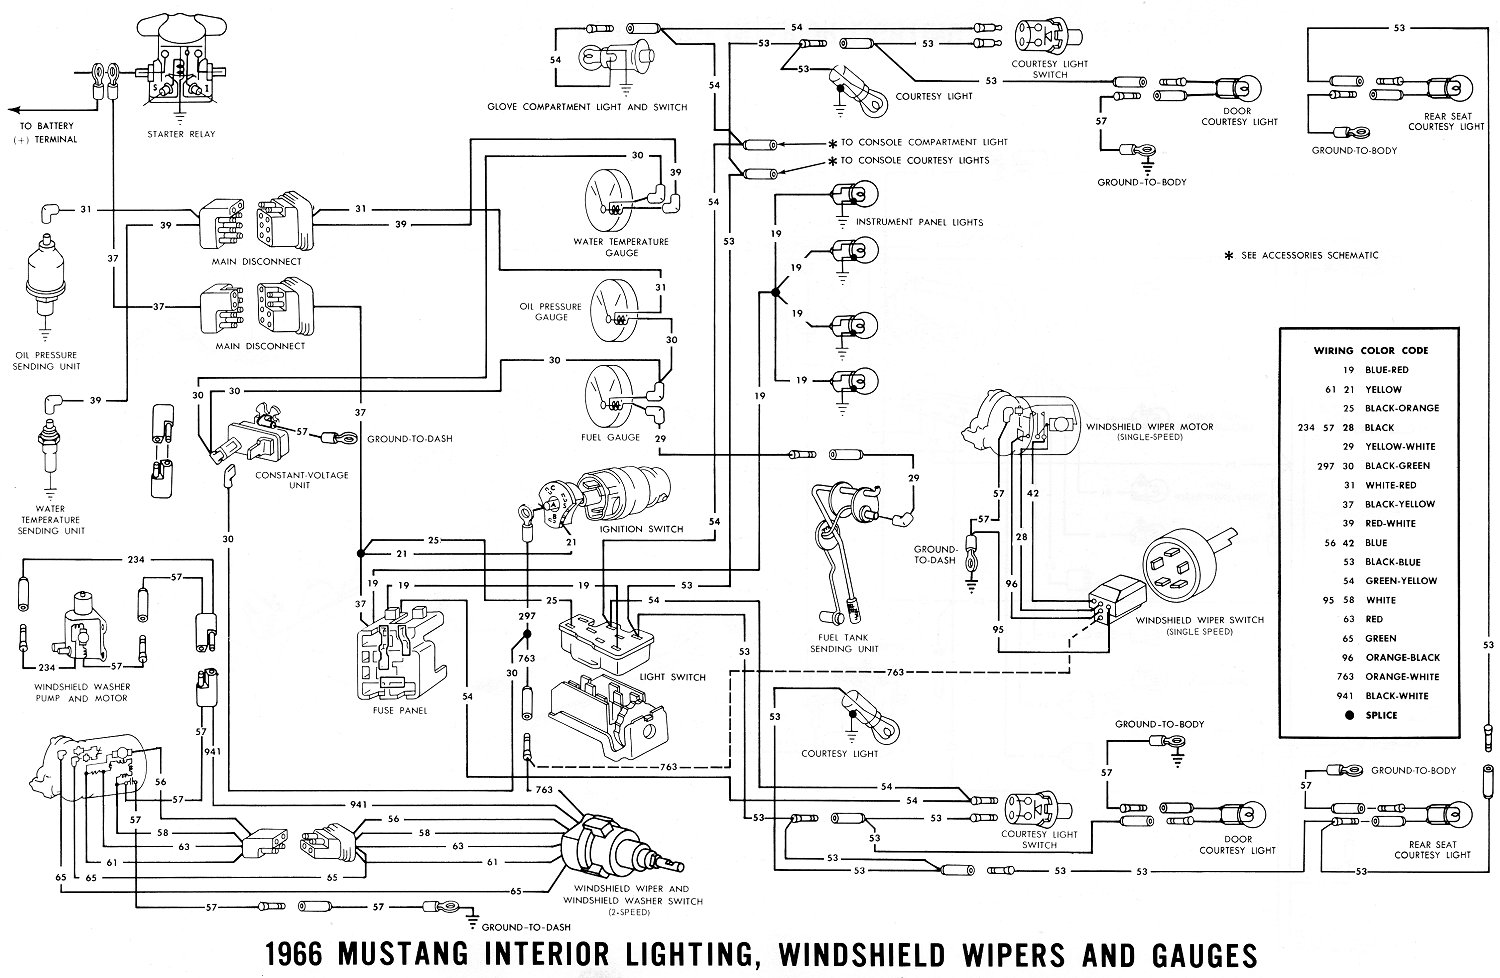 Wiring on lighting diagrams